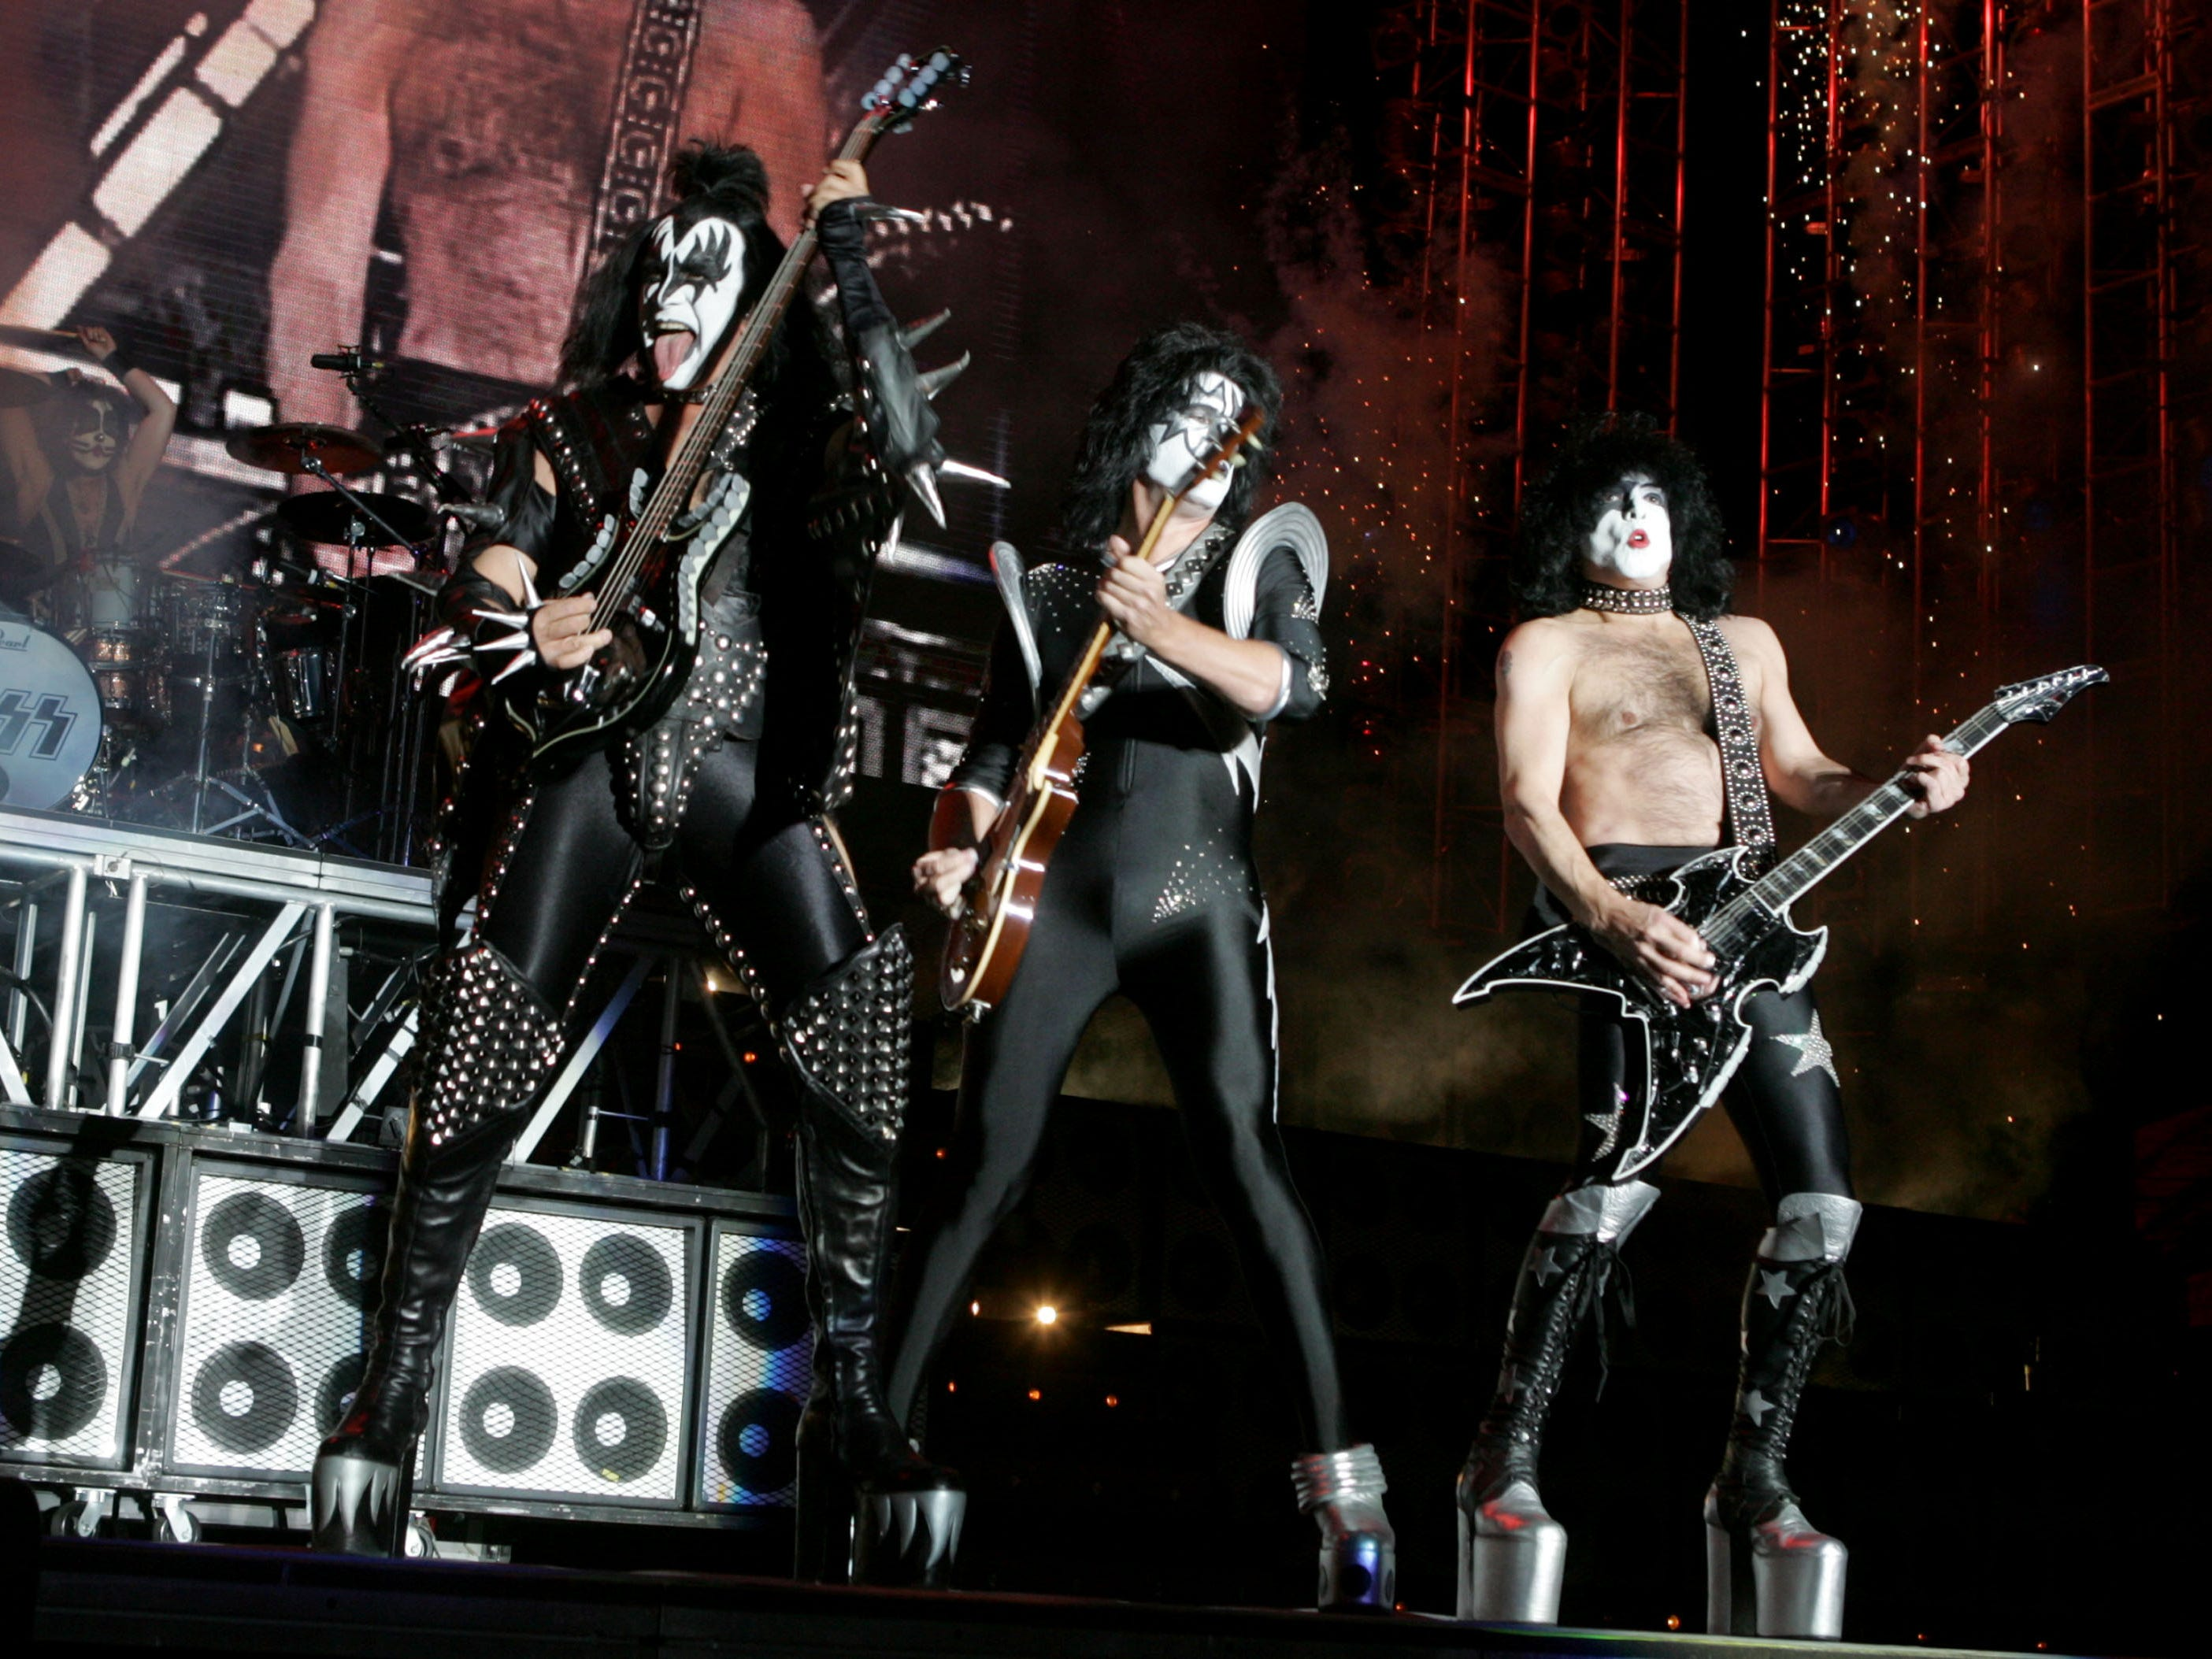 SAN DIEGO, CA - APRIL 1: Gene Simmons and Paul Stanley of Kiss perform at 'Rockin' The Corps An American Thank You Celebration Concert' at Camp Pendleton on April 1, 2005 in San Diego, California. (Photo by Kevin Winter/Getty Images)